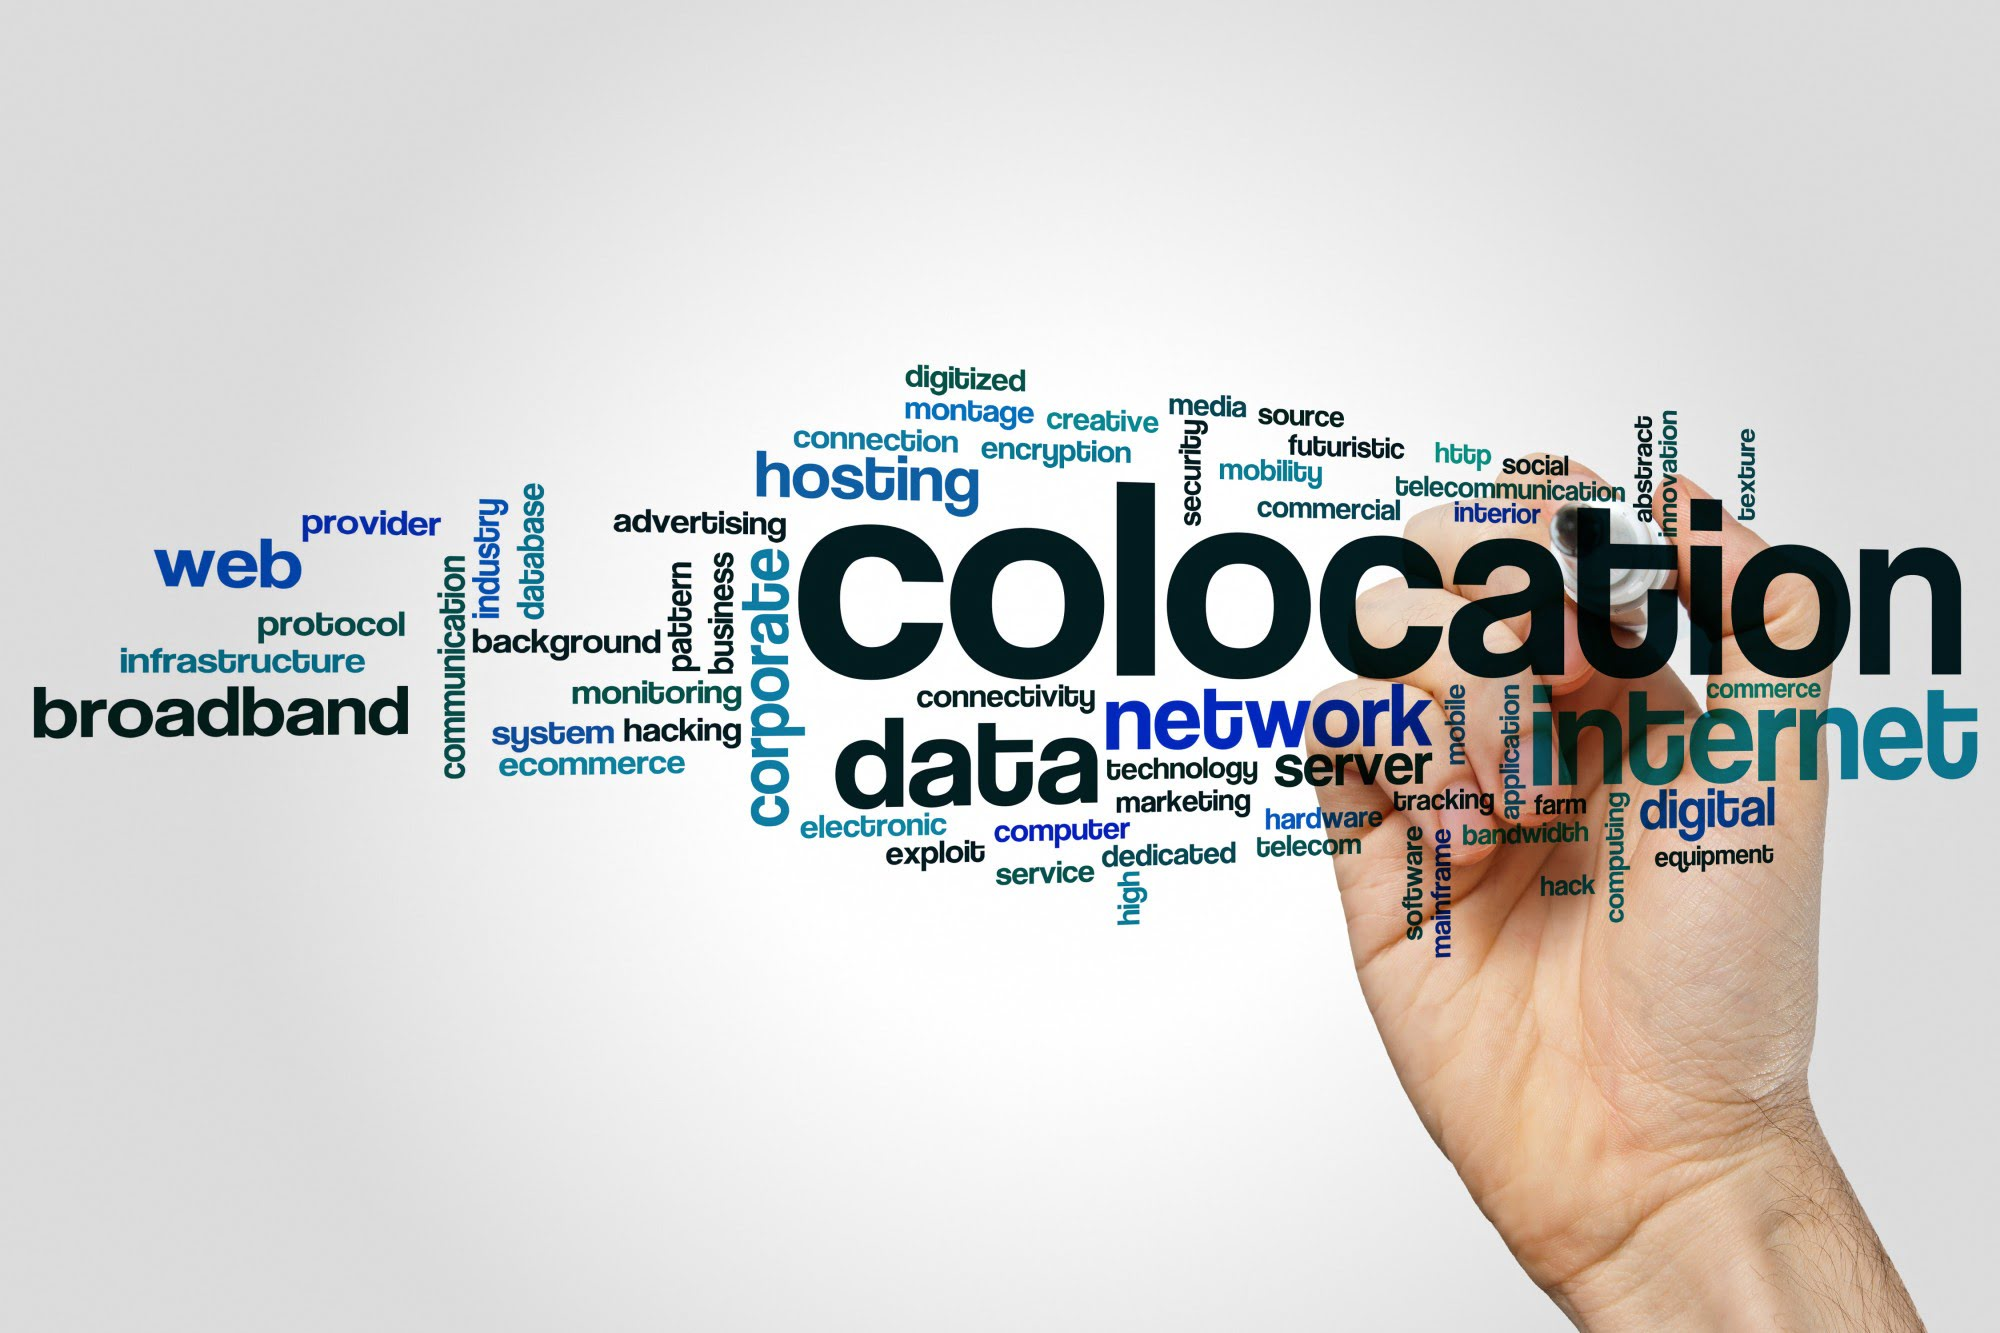 Is Cloud Hosting And Server Colocation One In The Same?